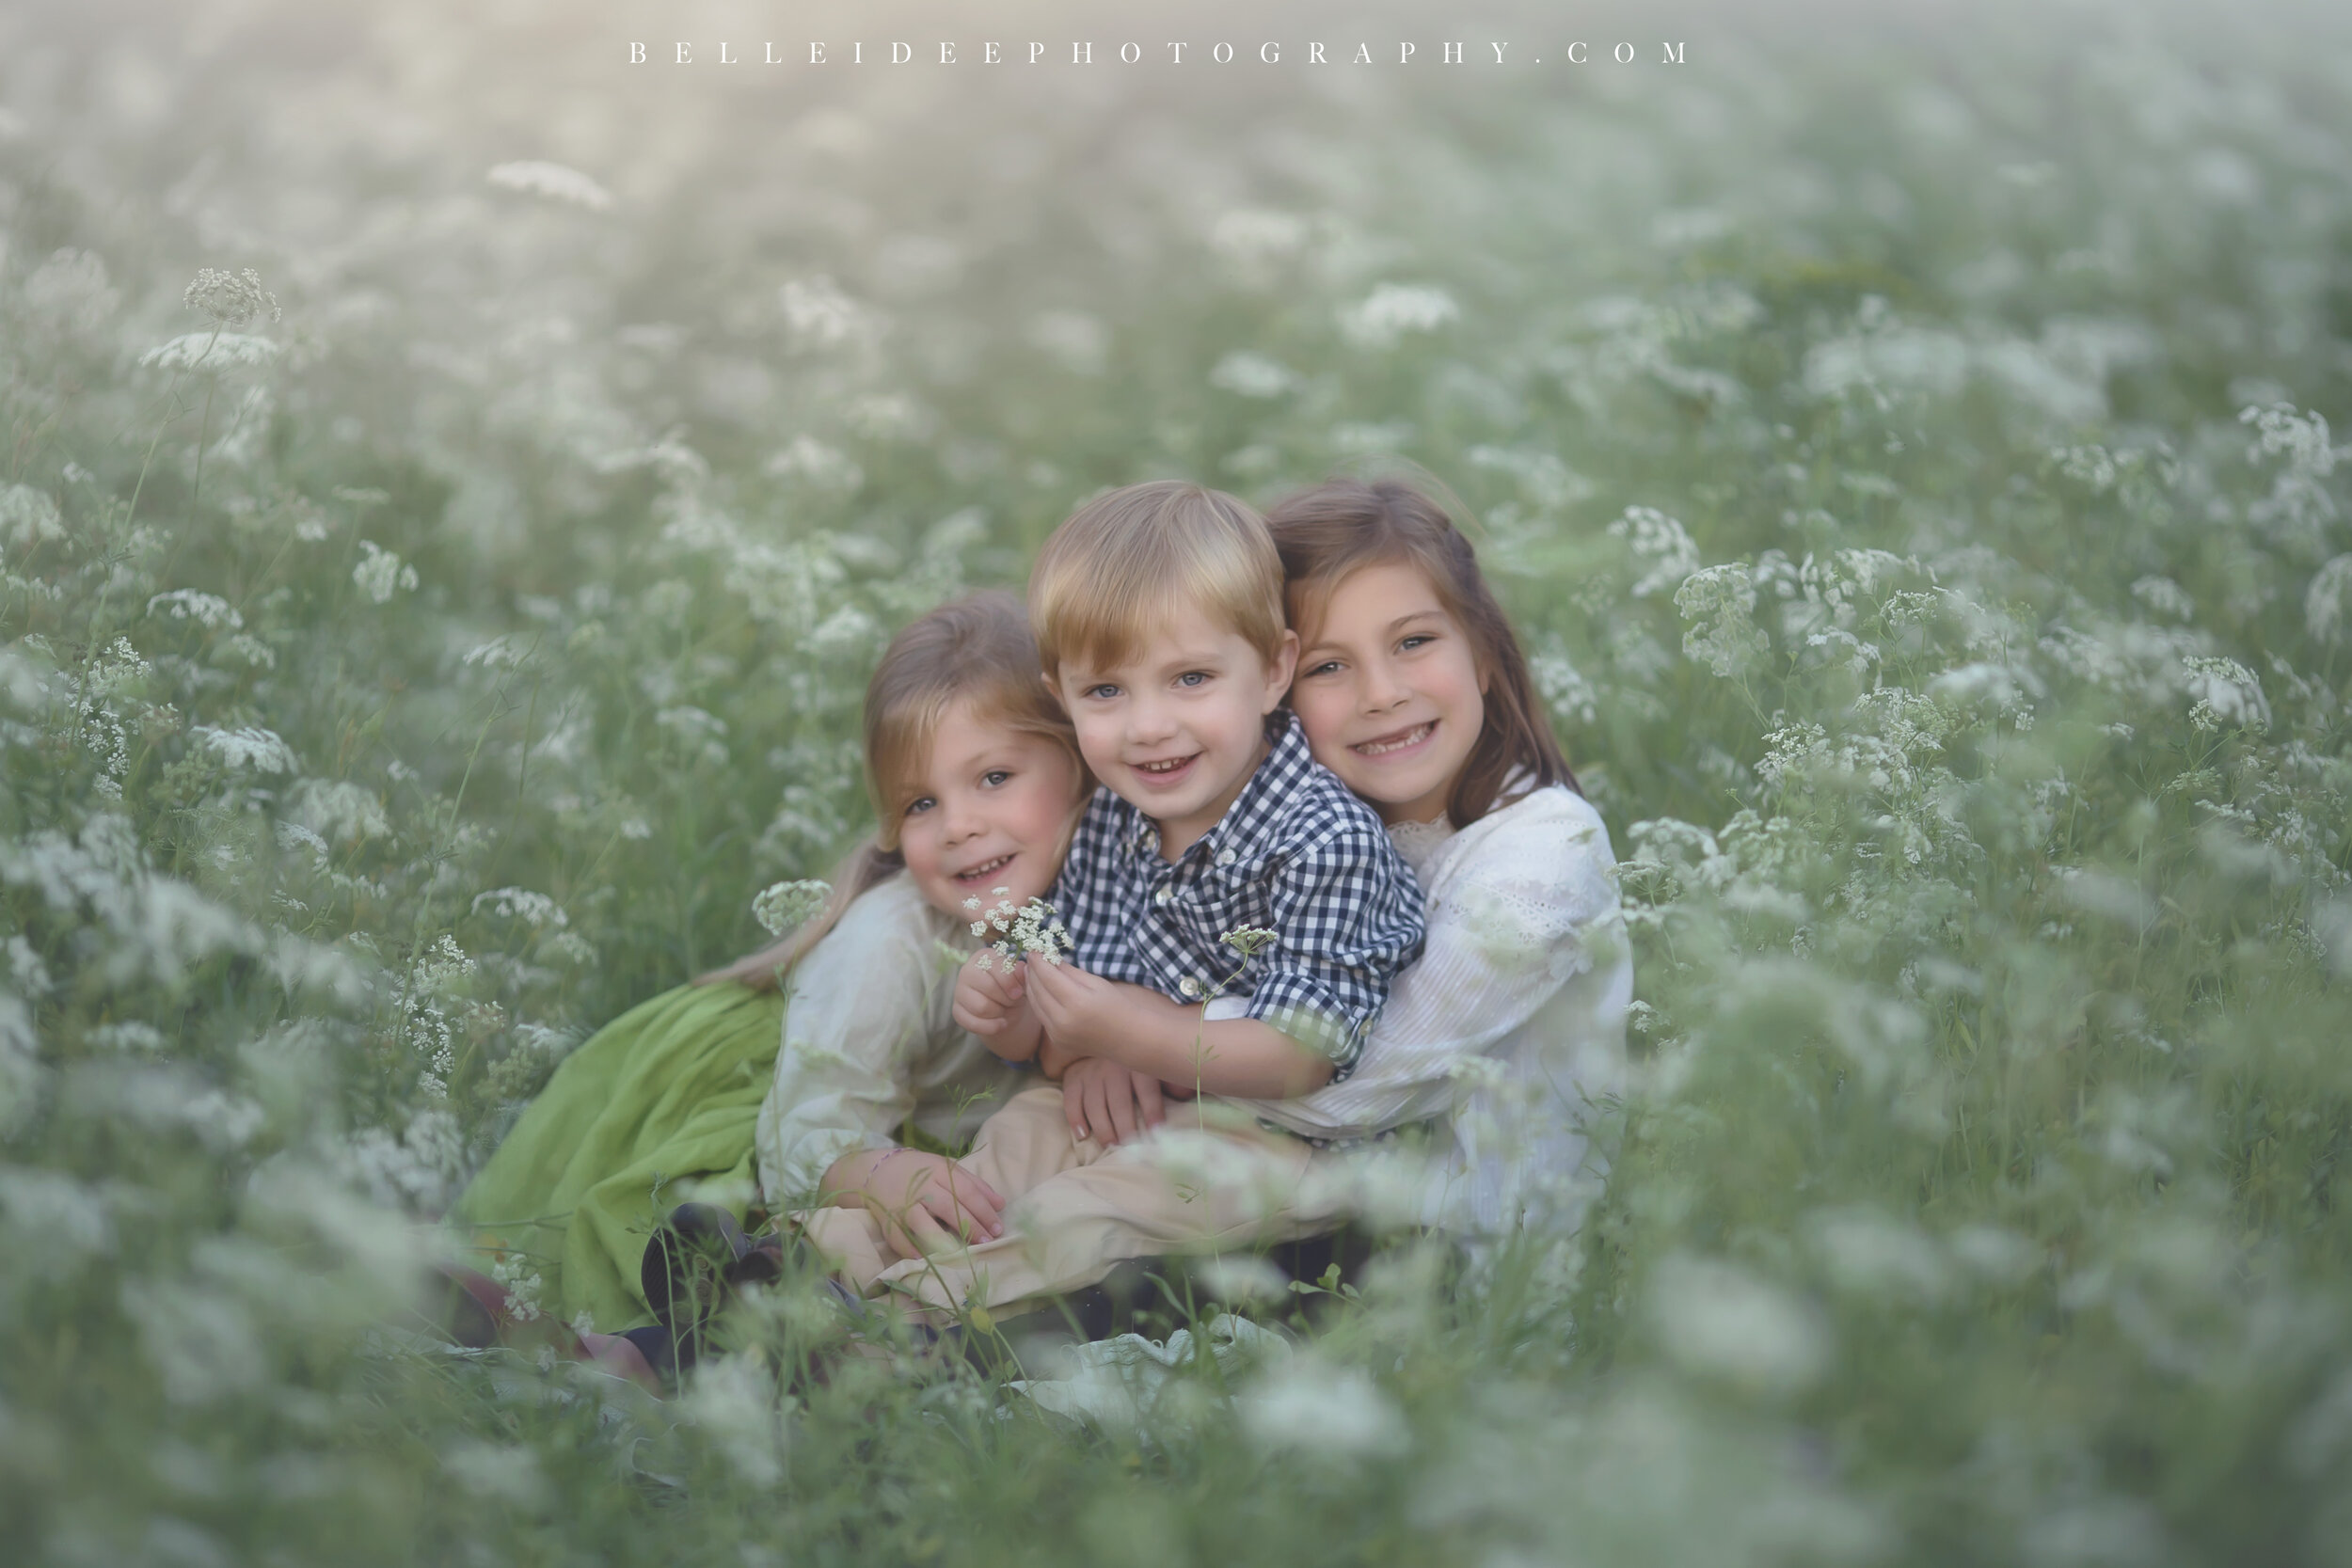 Best Photographer for kids in Buffalo, NY